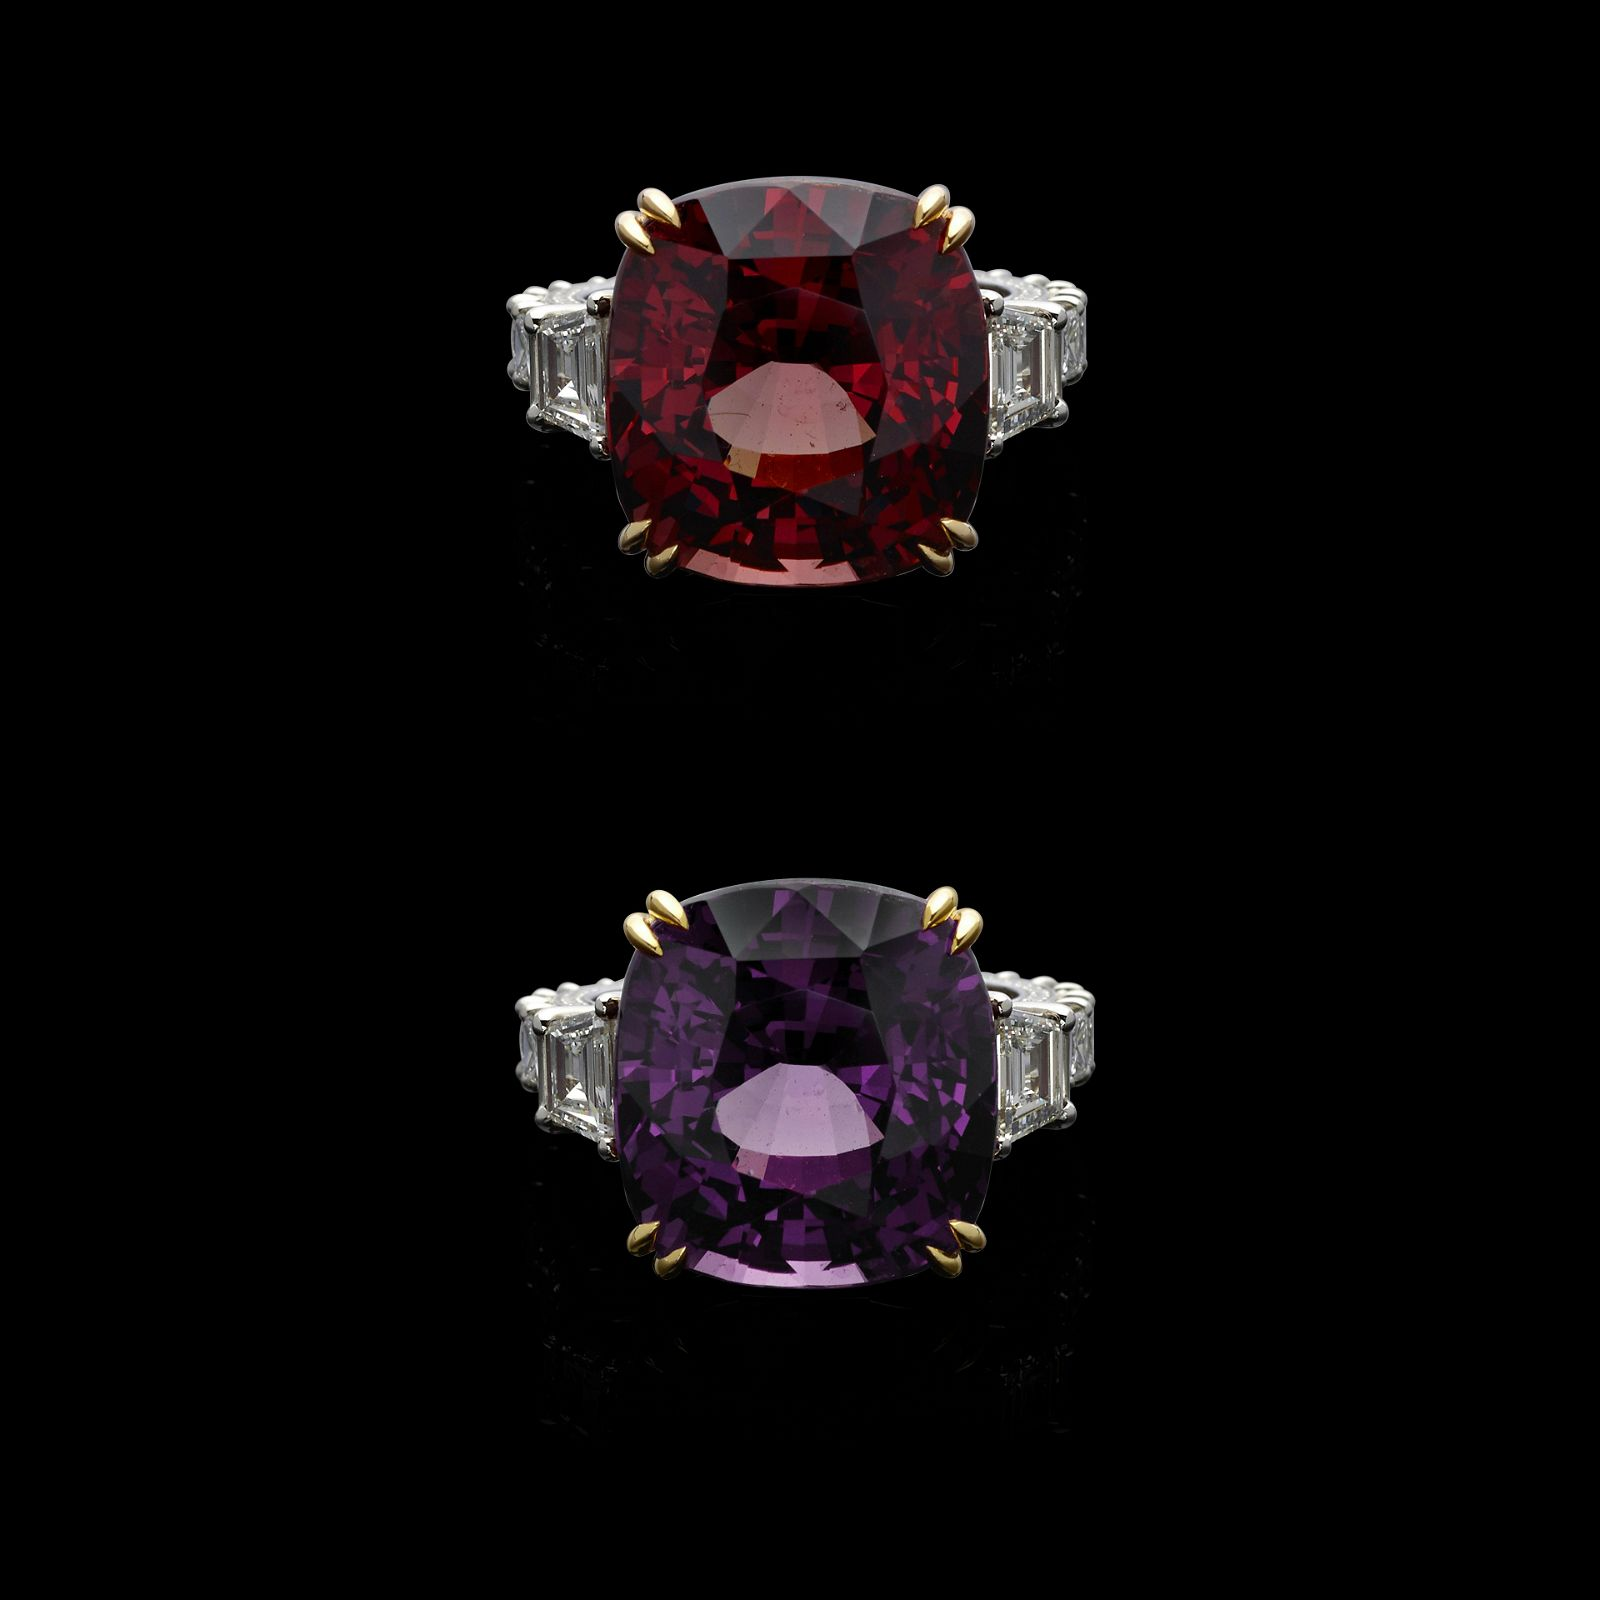 Rare and Exceptional Color-change Pyrope-spessartine